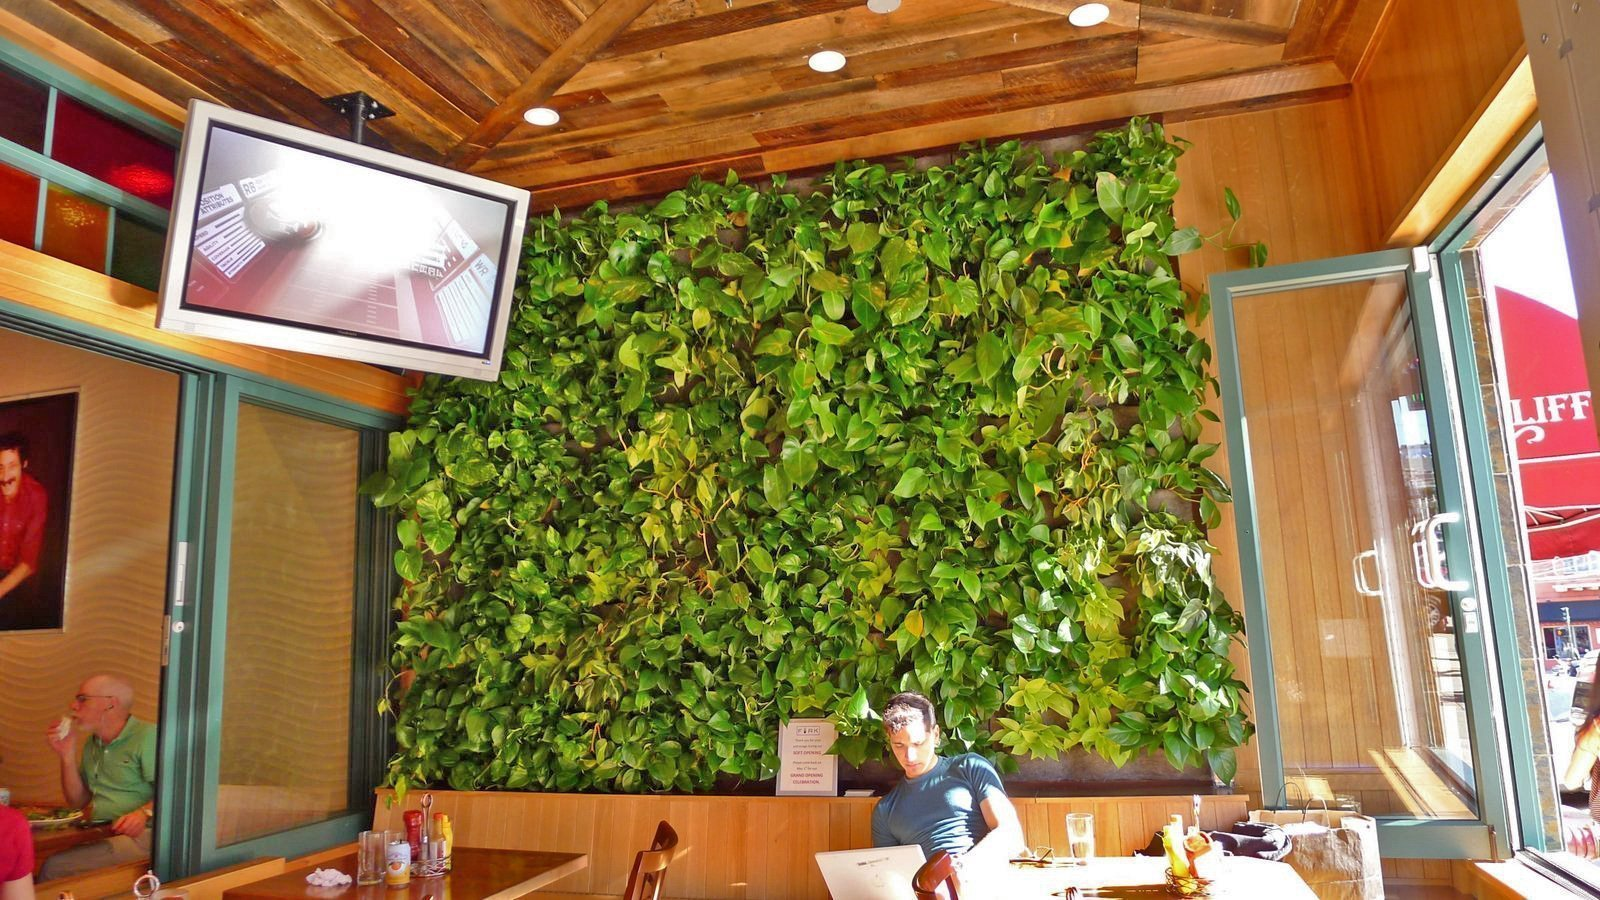 Chris Bribach, Plants On Walls. Fork Cafe, Florafelt Vertical Garden Planters.